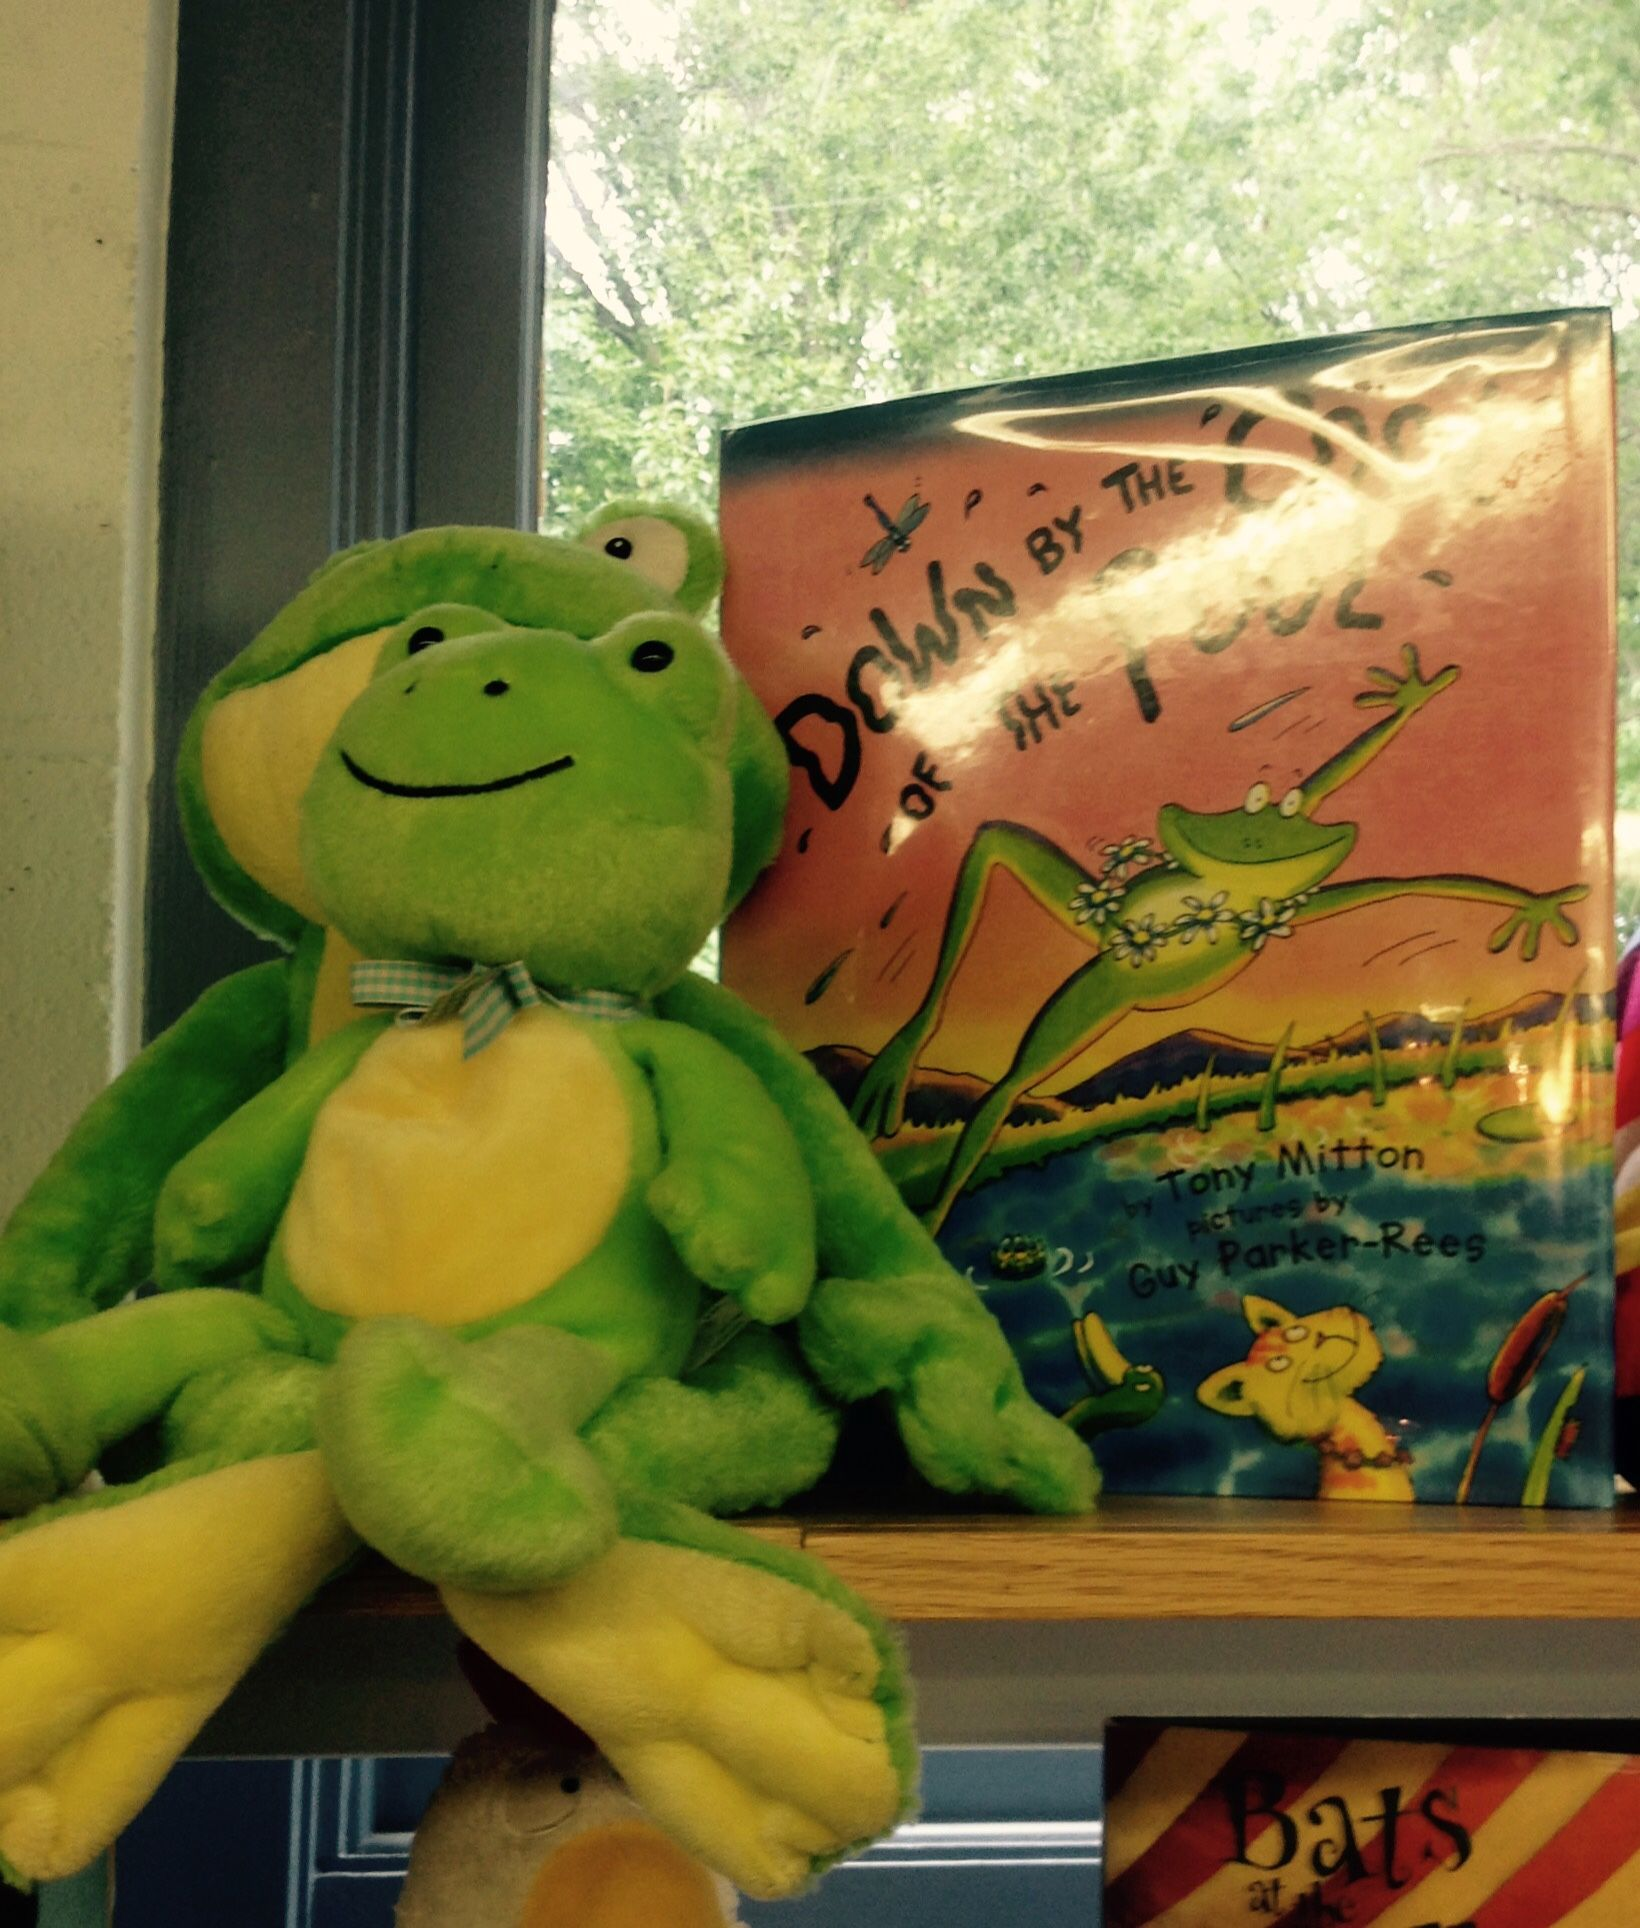 Pin by Berkeley Heights Public Library on Fleur the Frog | Pinterest ...